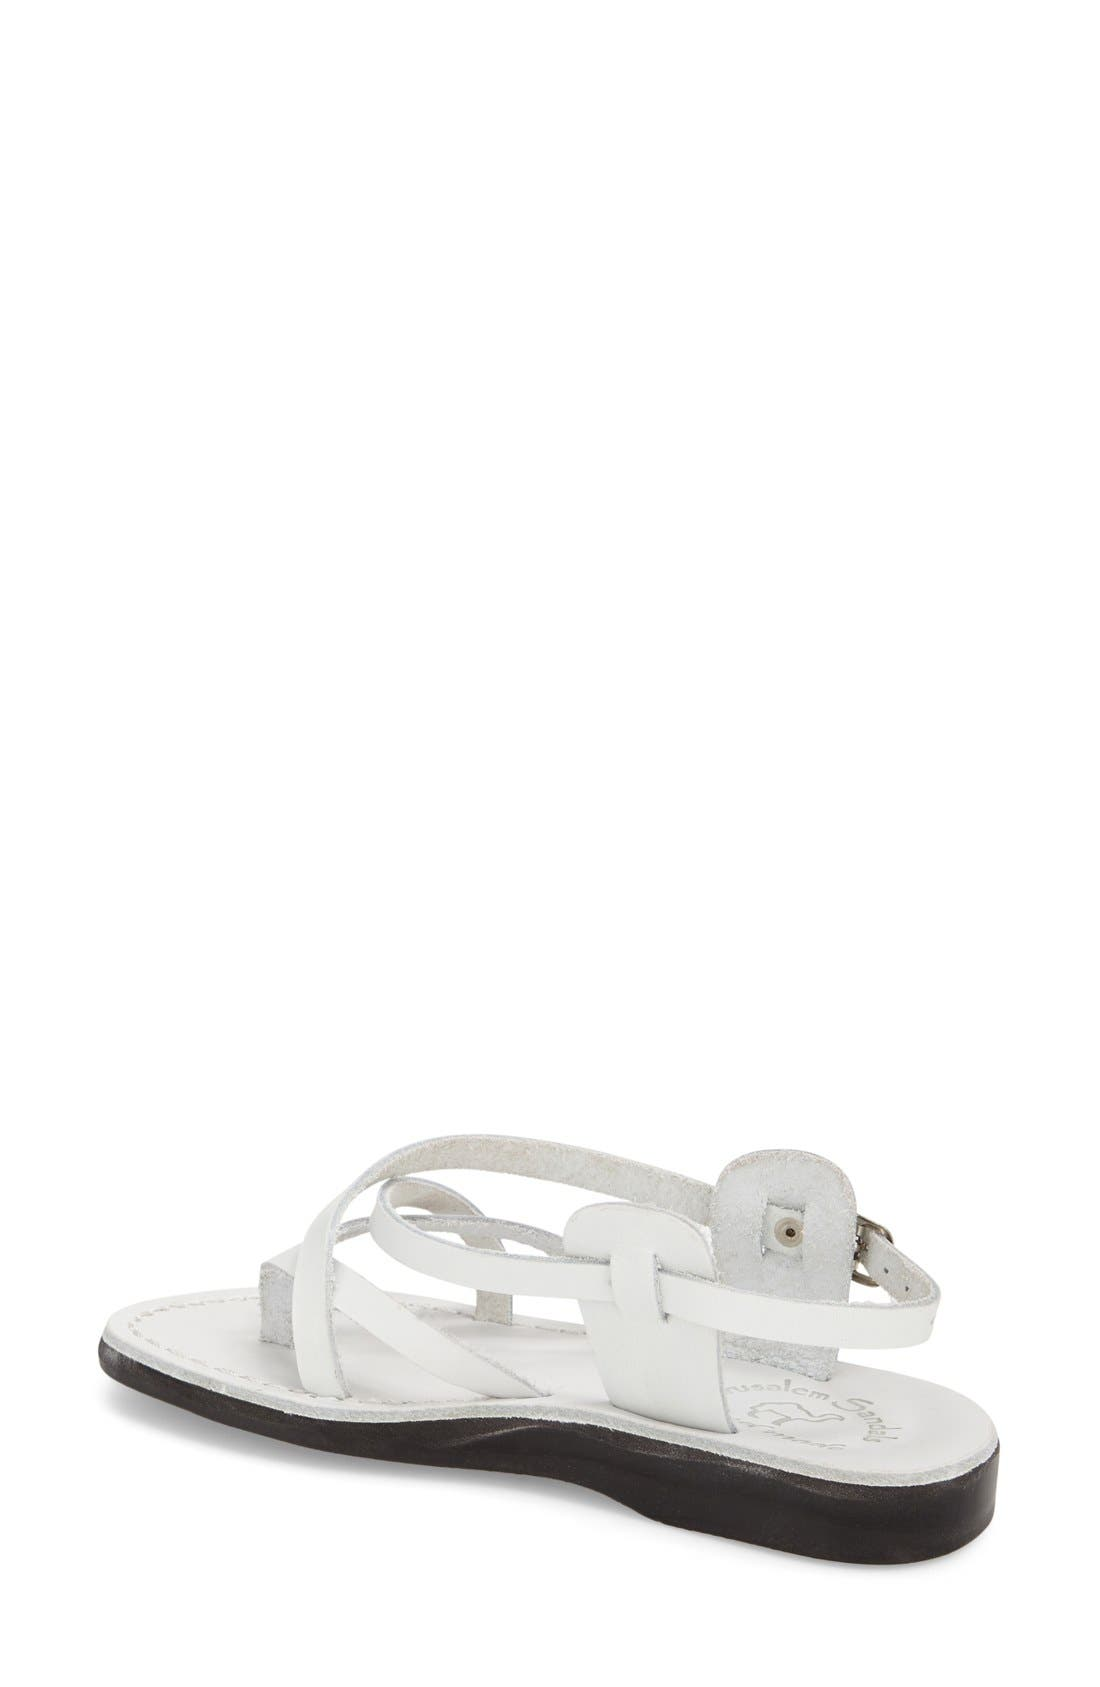 'Tamar' Strappy Sandal,                             Alternate thumbnail 7, color,